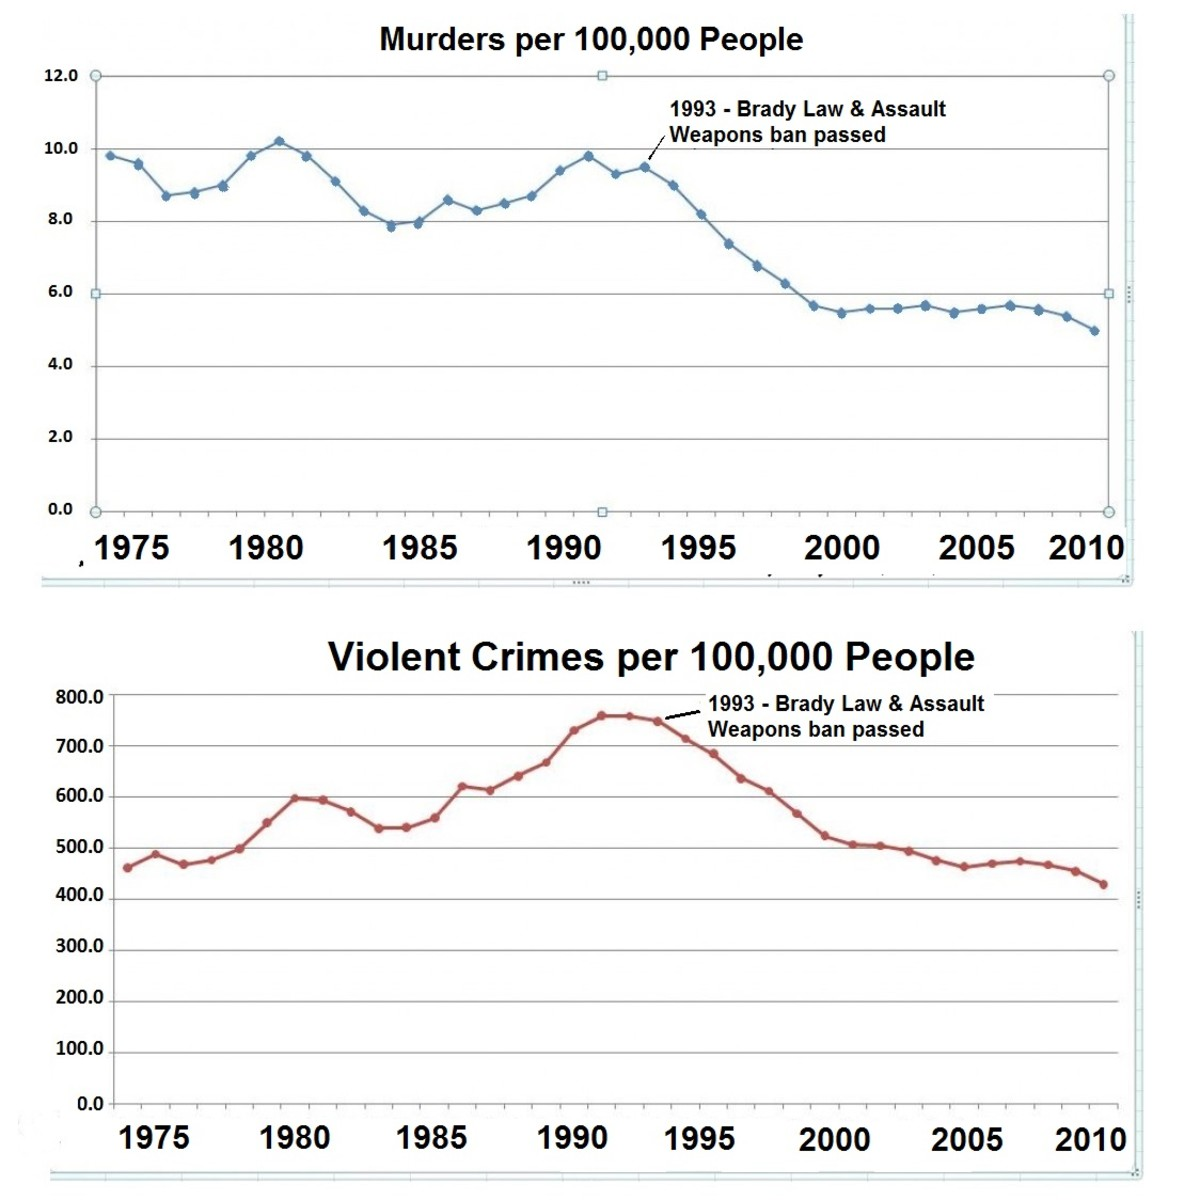 These charts showing the rates of murder and violent crime over a 35 year period indicate a dramatic decline after the Brady Law was passed.